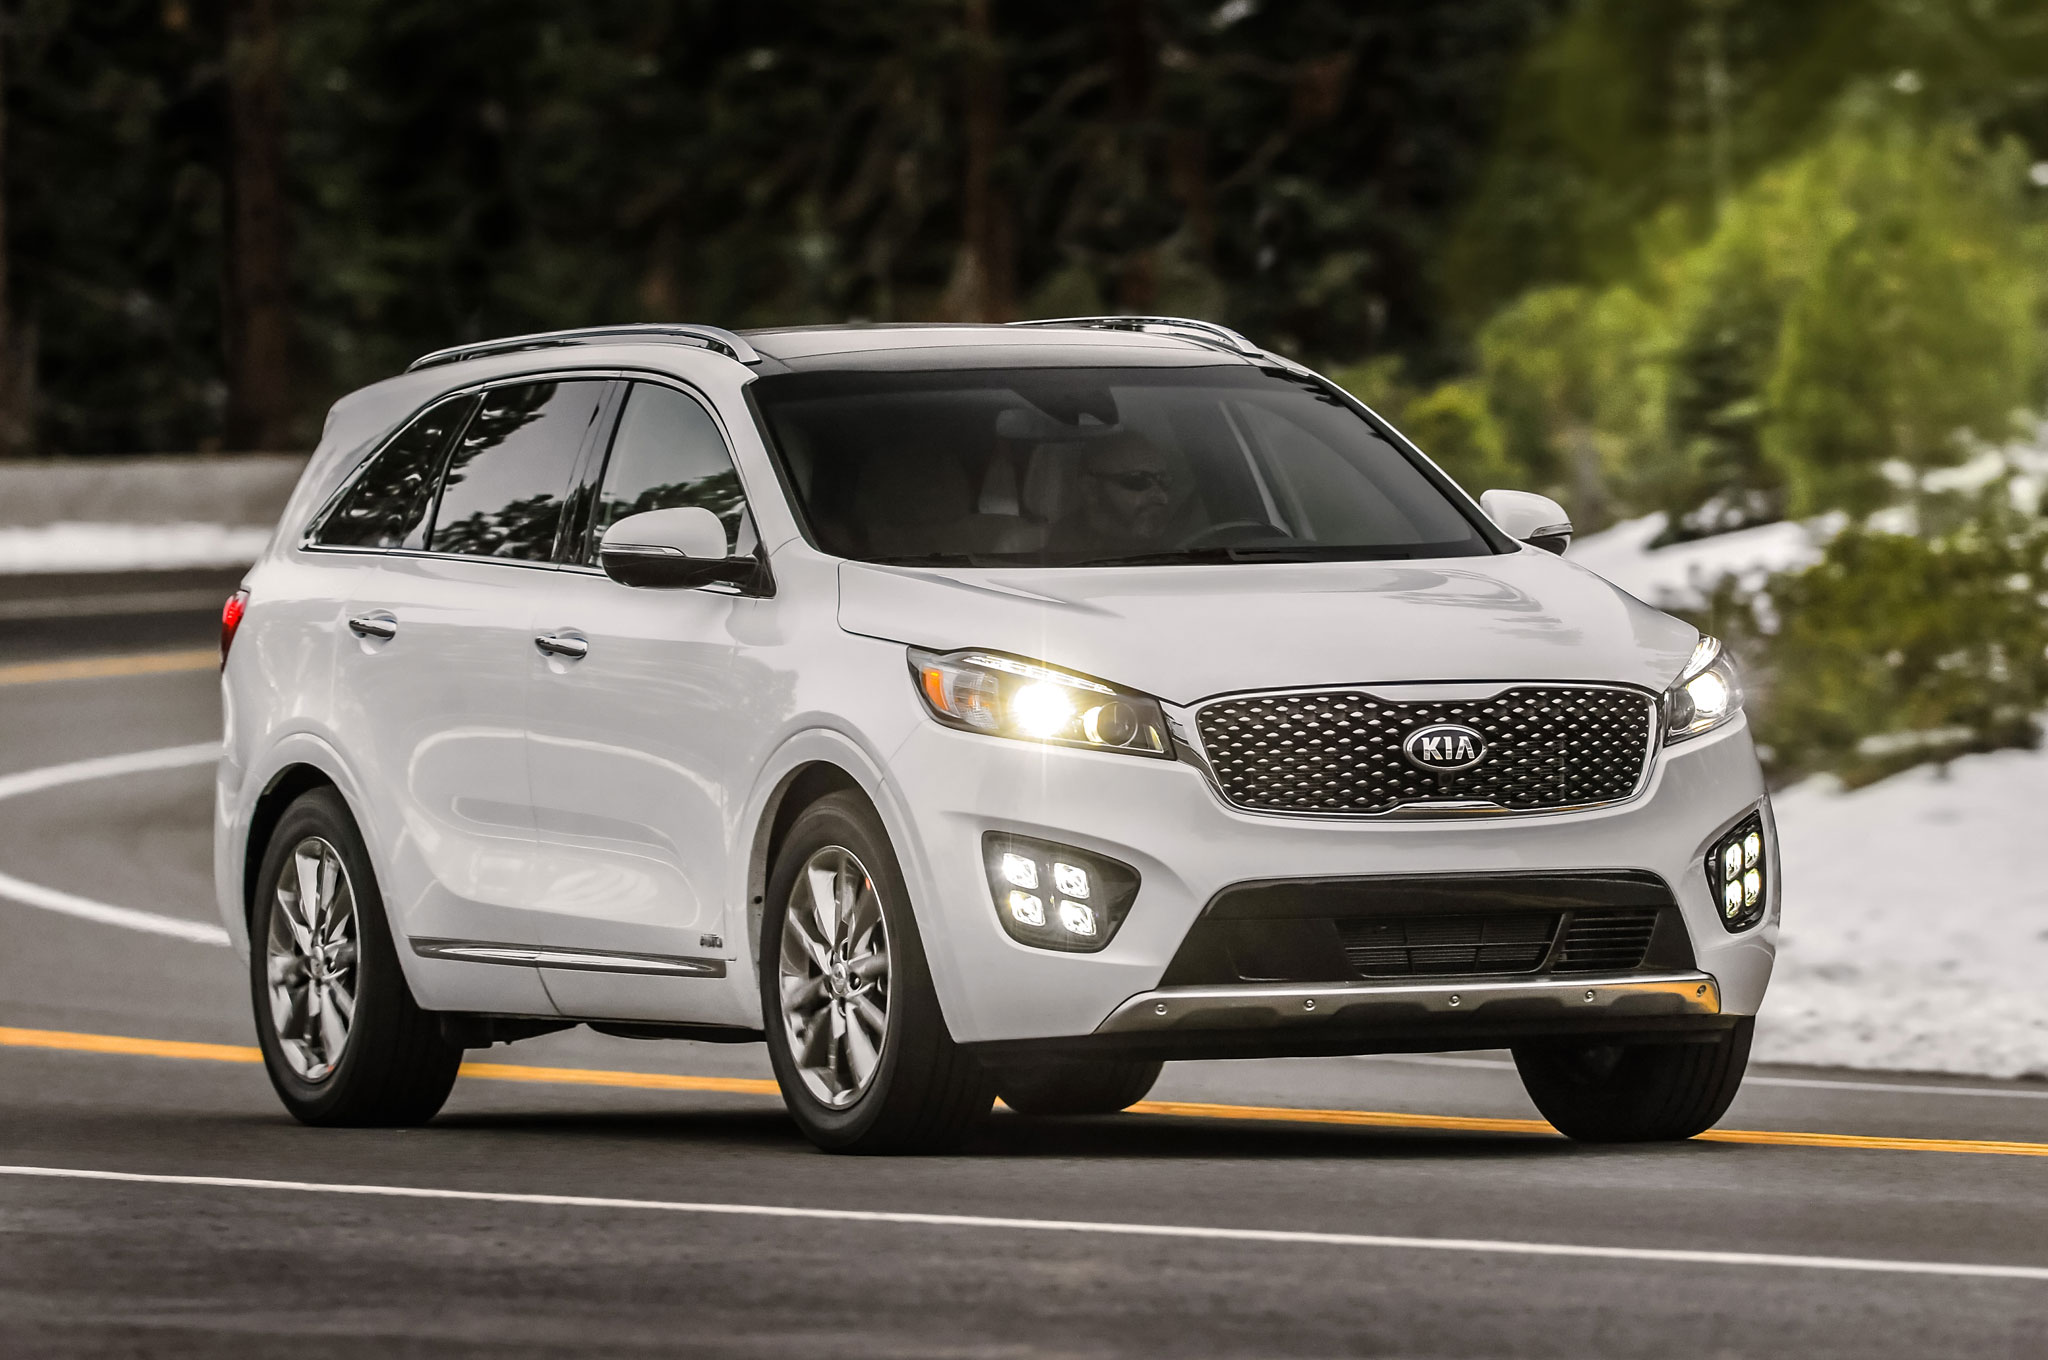 2016 Kia Soo Sxl Front Three Quarter 2